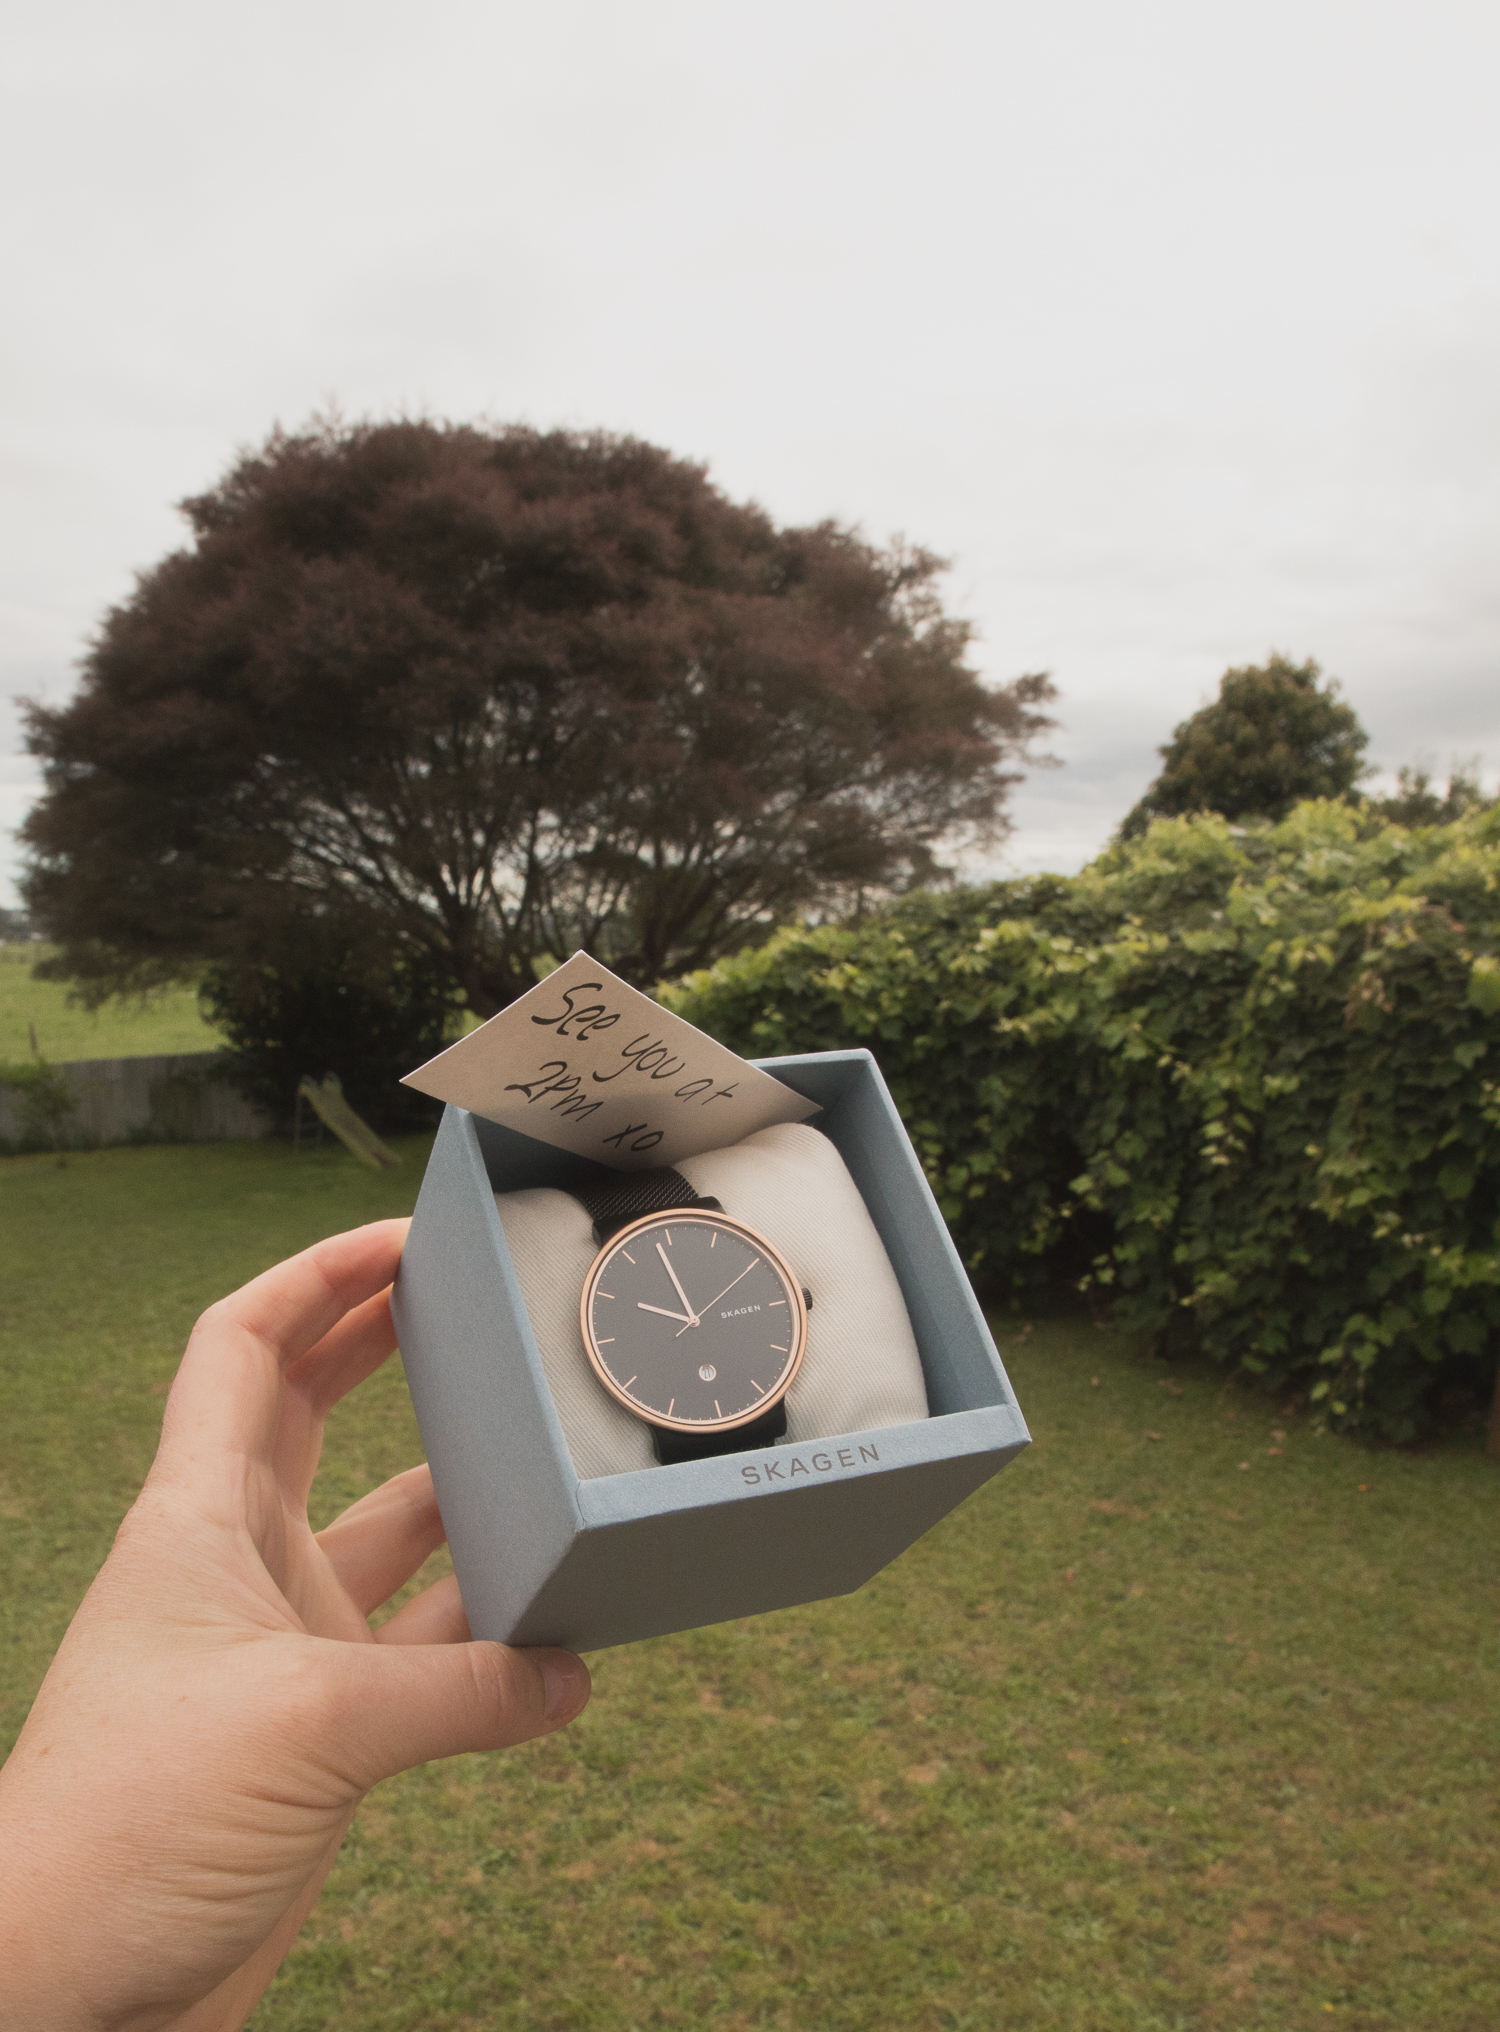 groom gift from bride on wedding day